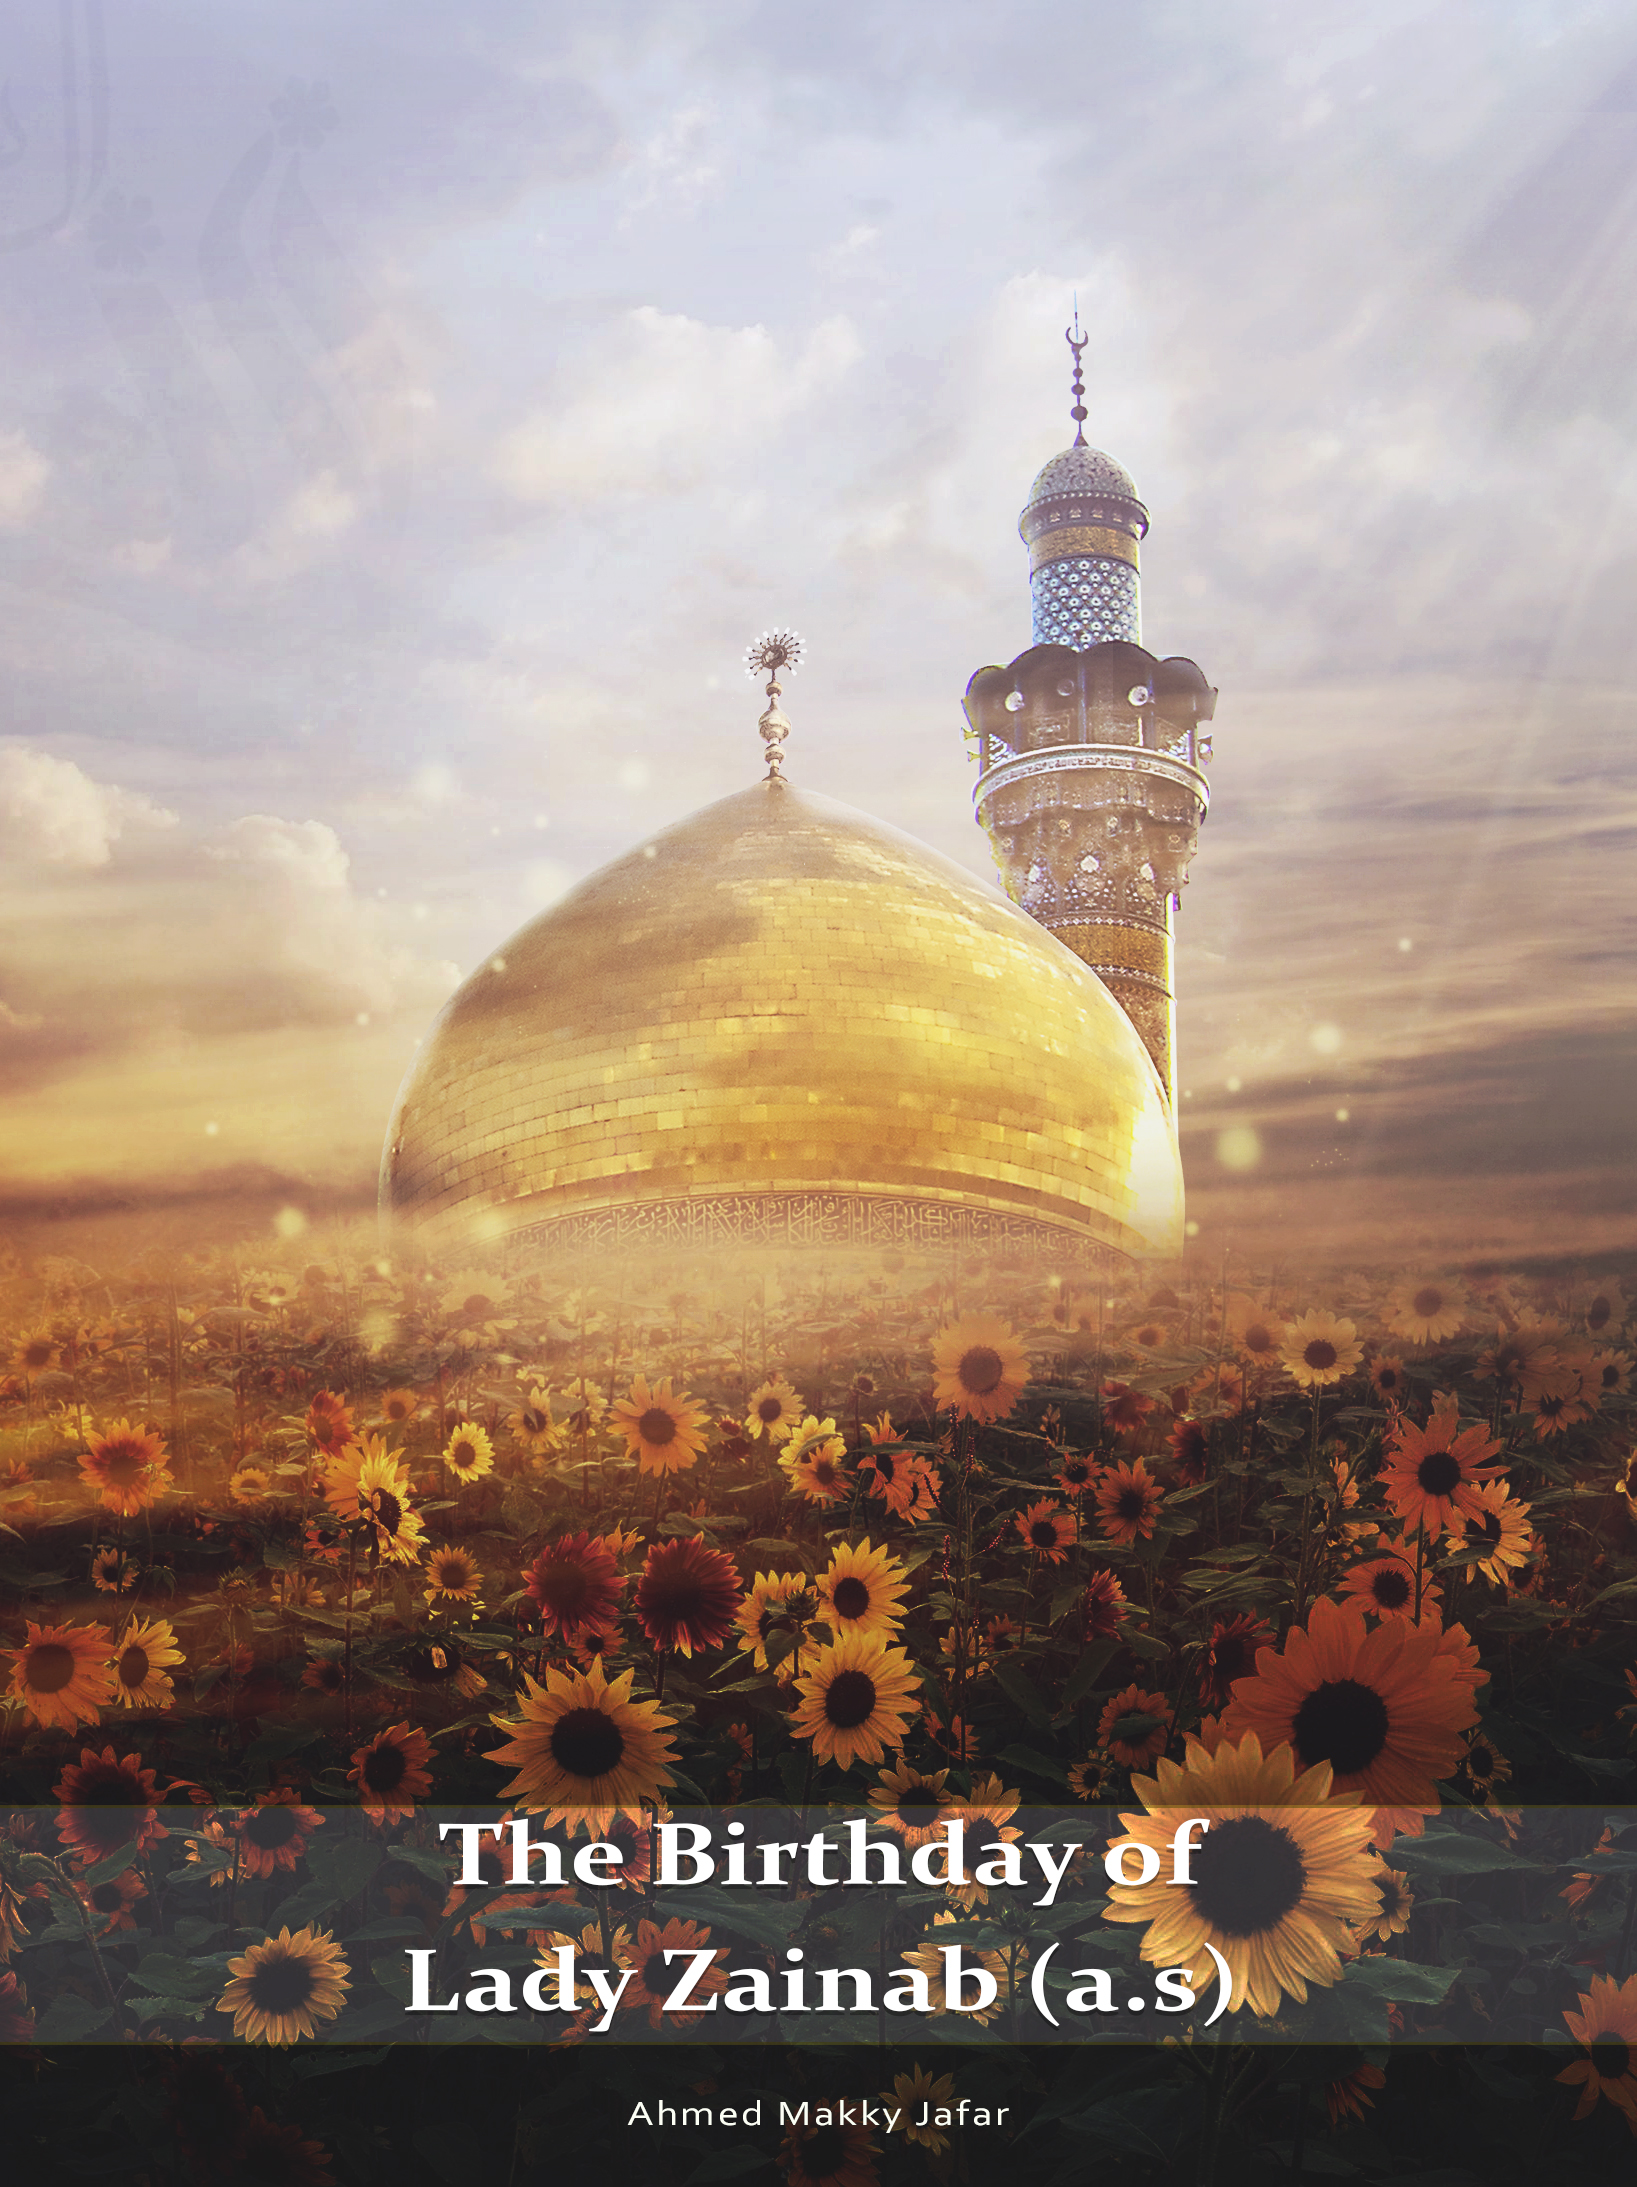 The Life of Lady Zaynab - International Shia News Agency